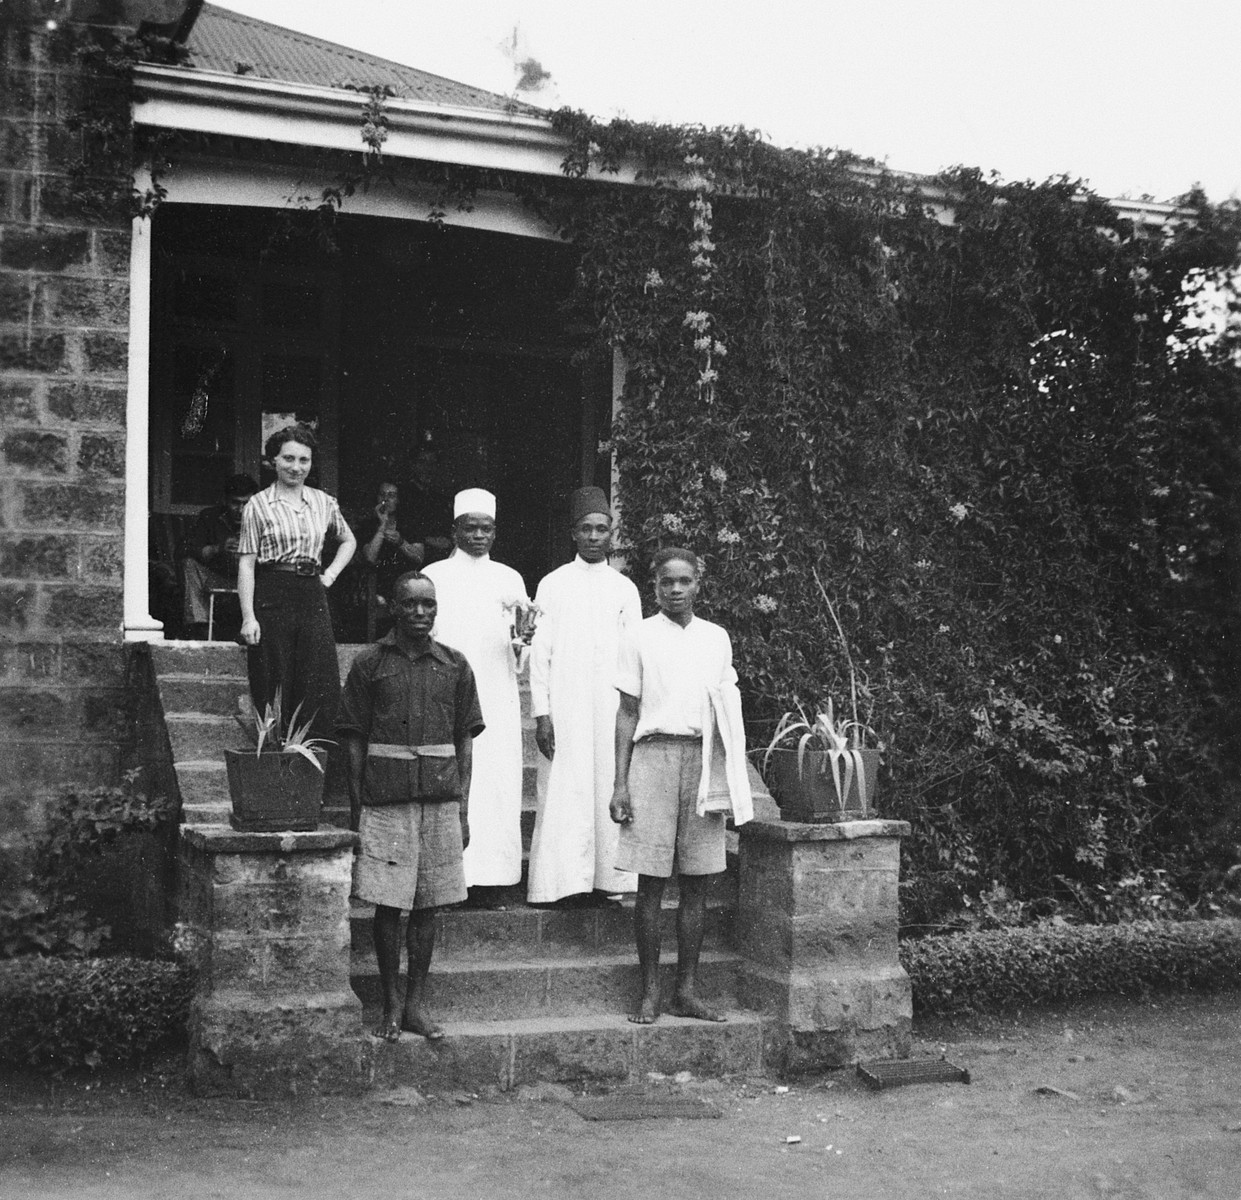 German Jewish refugee Ruth Weyl poses with her African staff on the steps of her boarding house in Nairobi, Kenya.